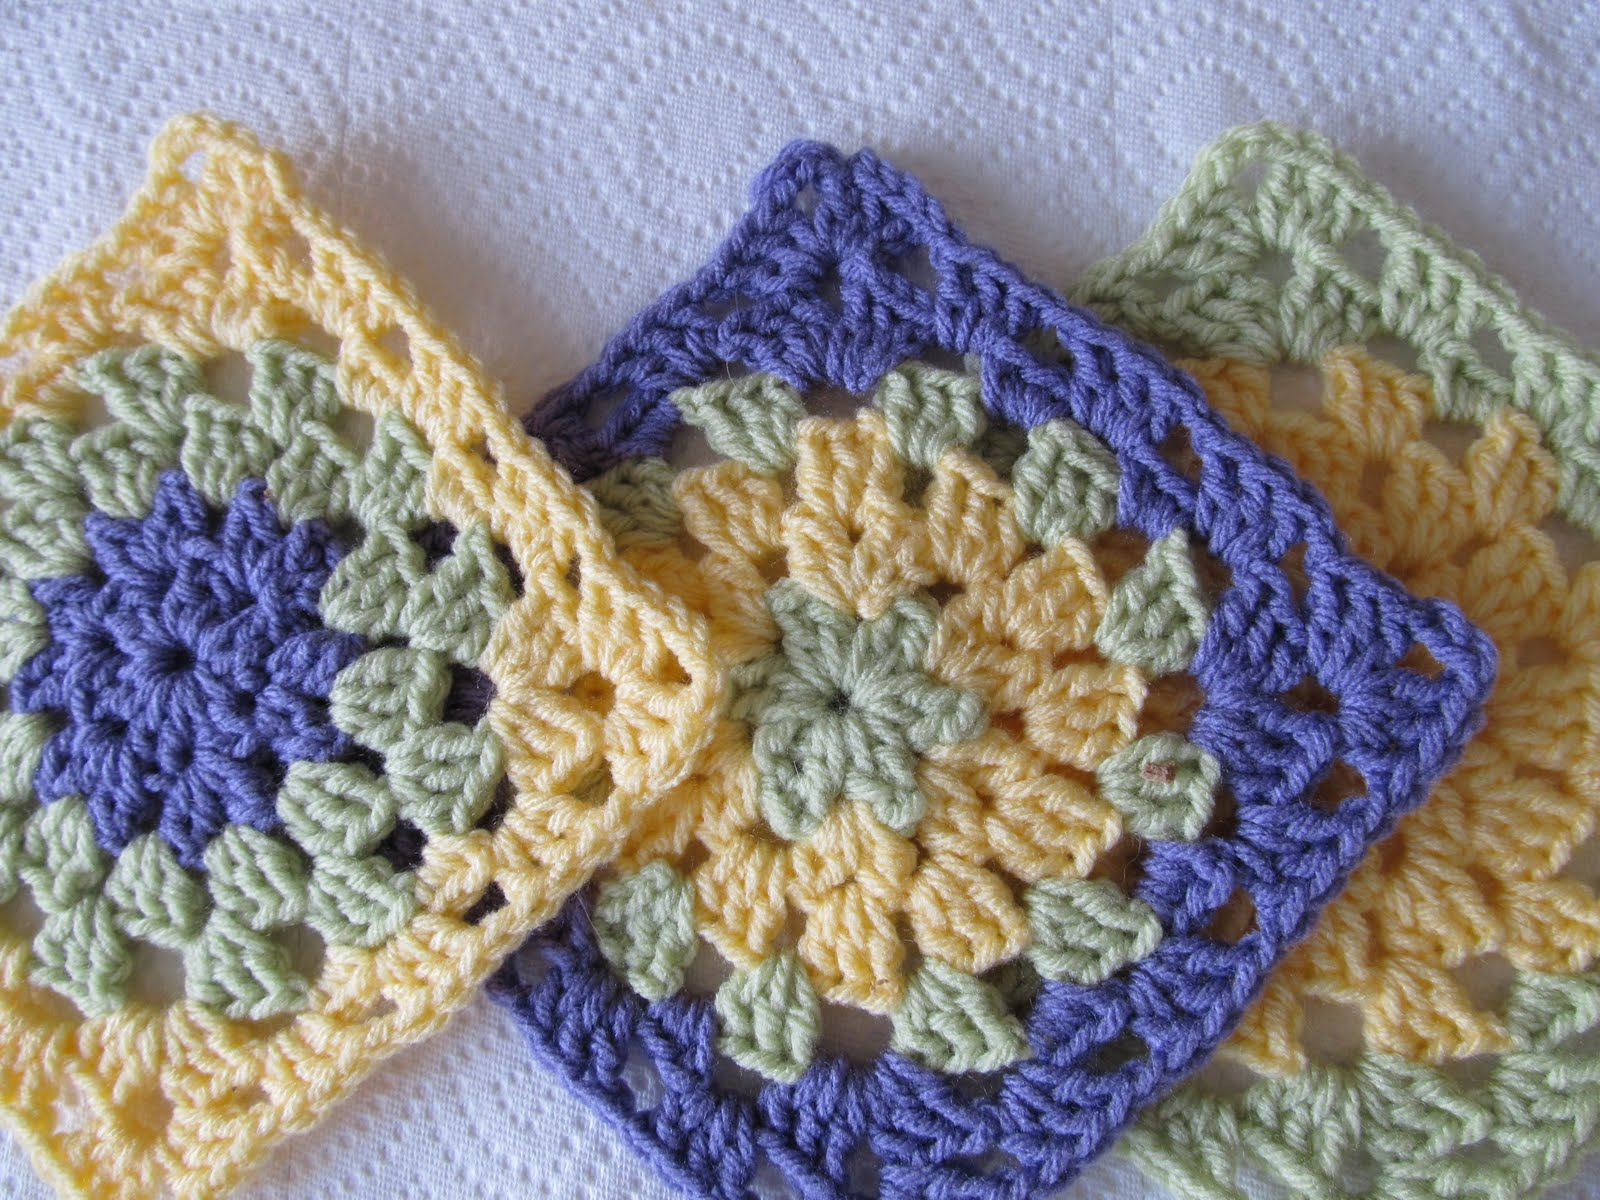 Crochet Patterns To Donate : charity pattern nbr 2 charity pattern nbr 3 charity pattern nbr 4 here ...